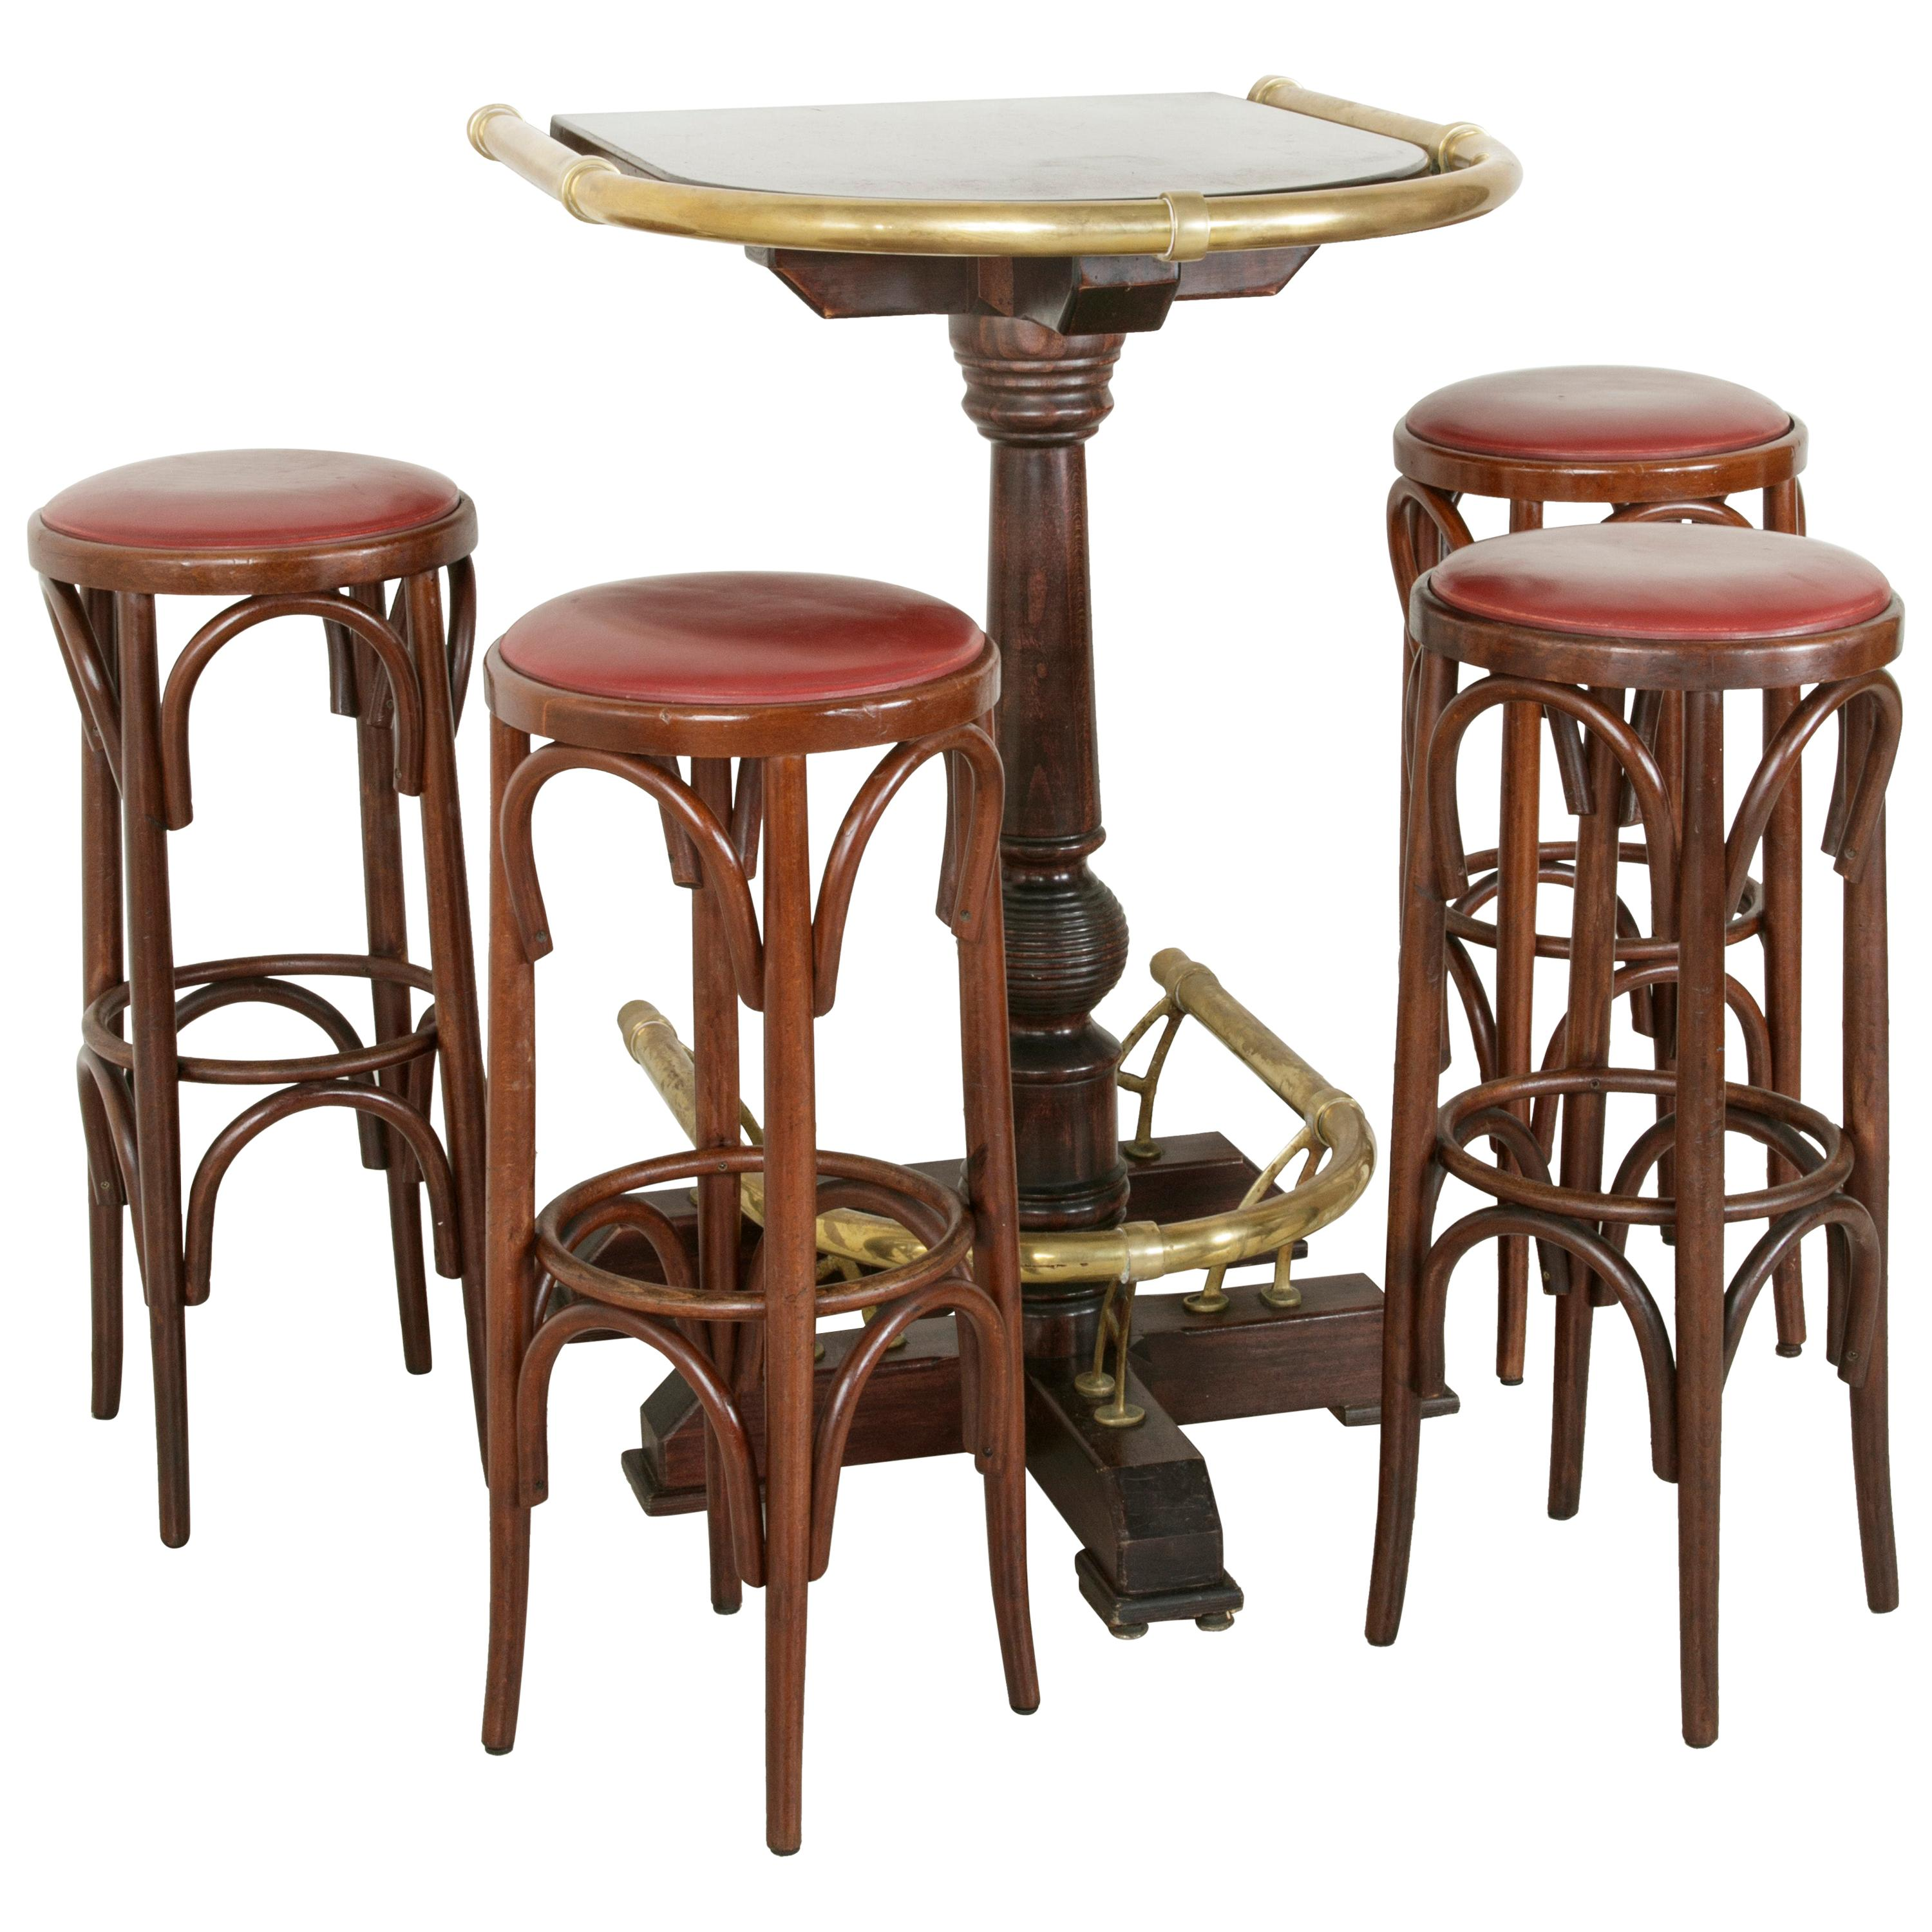 20th Century Paris Brasserie High Top Table With Brass Rails And Four Bar  Stools For Sale